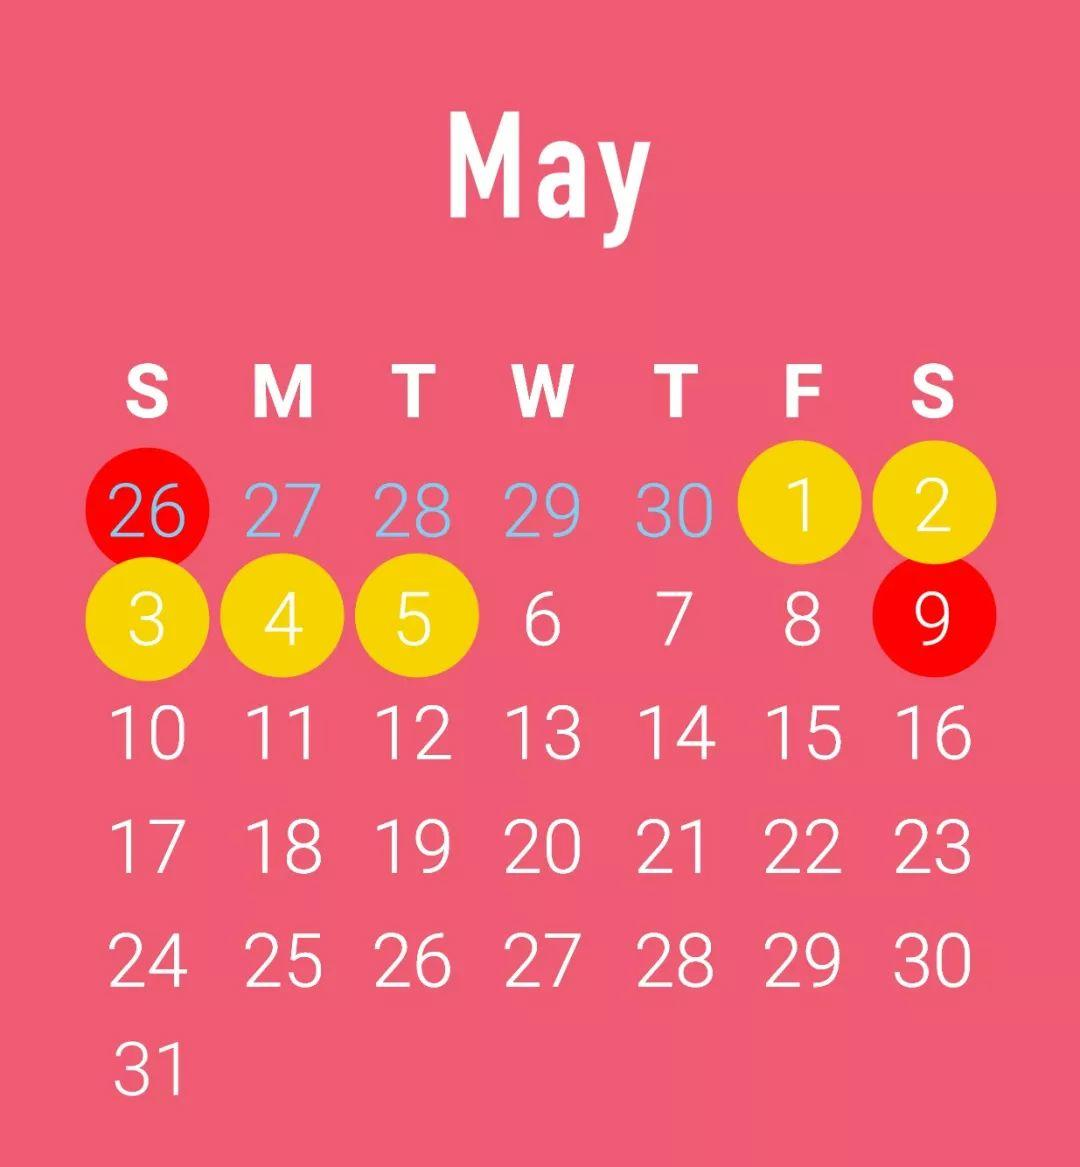 China's Official 2020 Public Holiday Calendar Just Came Out!